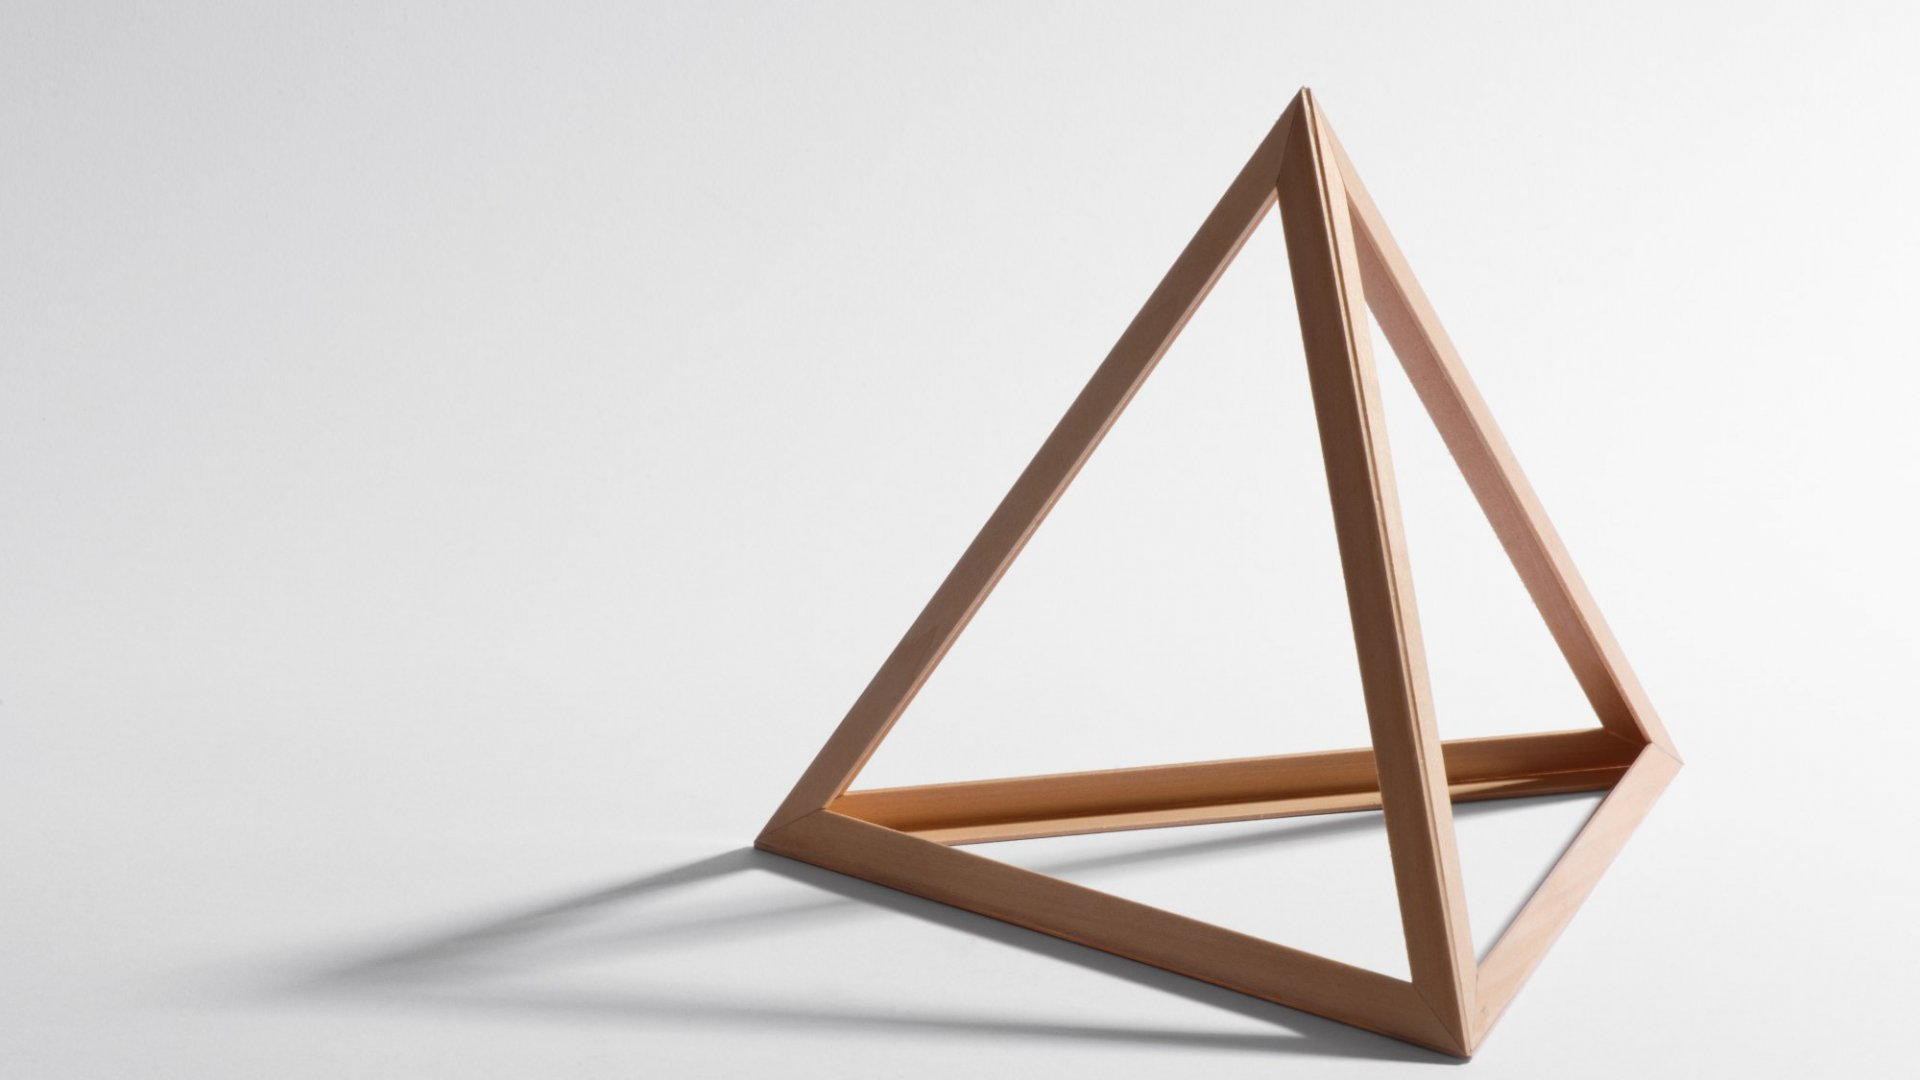 The 3 Sides of the 'Magic Triangle' of Servant Leadership